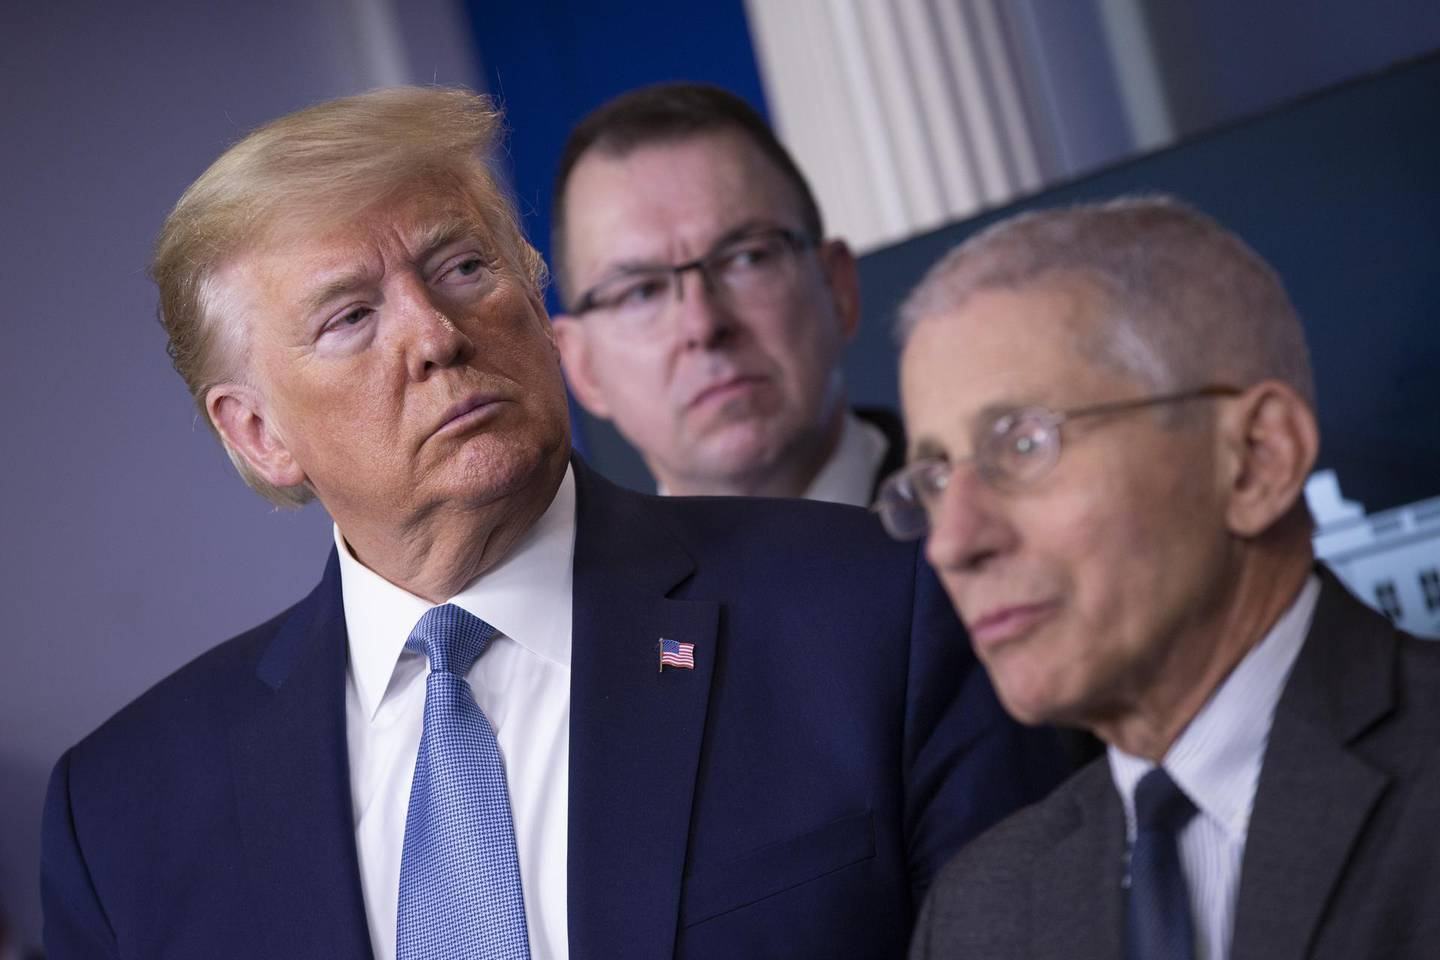 """U.S. President Donald Trump, left, listens during a Coronavirus Task Force news conference in the briefing room of the White House in Washington, D.C., U.S., on Saturday, March 21, 2020. Trump said negotiators in Congress and his administration are """"very close"""" to agreement on a coronavirus economic-relief plan that his economic adviser said will aim to boost the U.S. economy by about $2 trillion. Photographer: Stefani Reynolds/CNP/Bloomberg"""